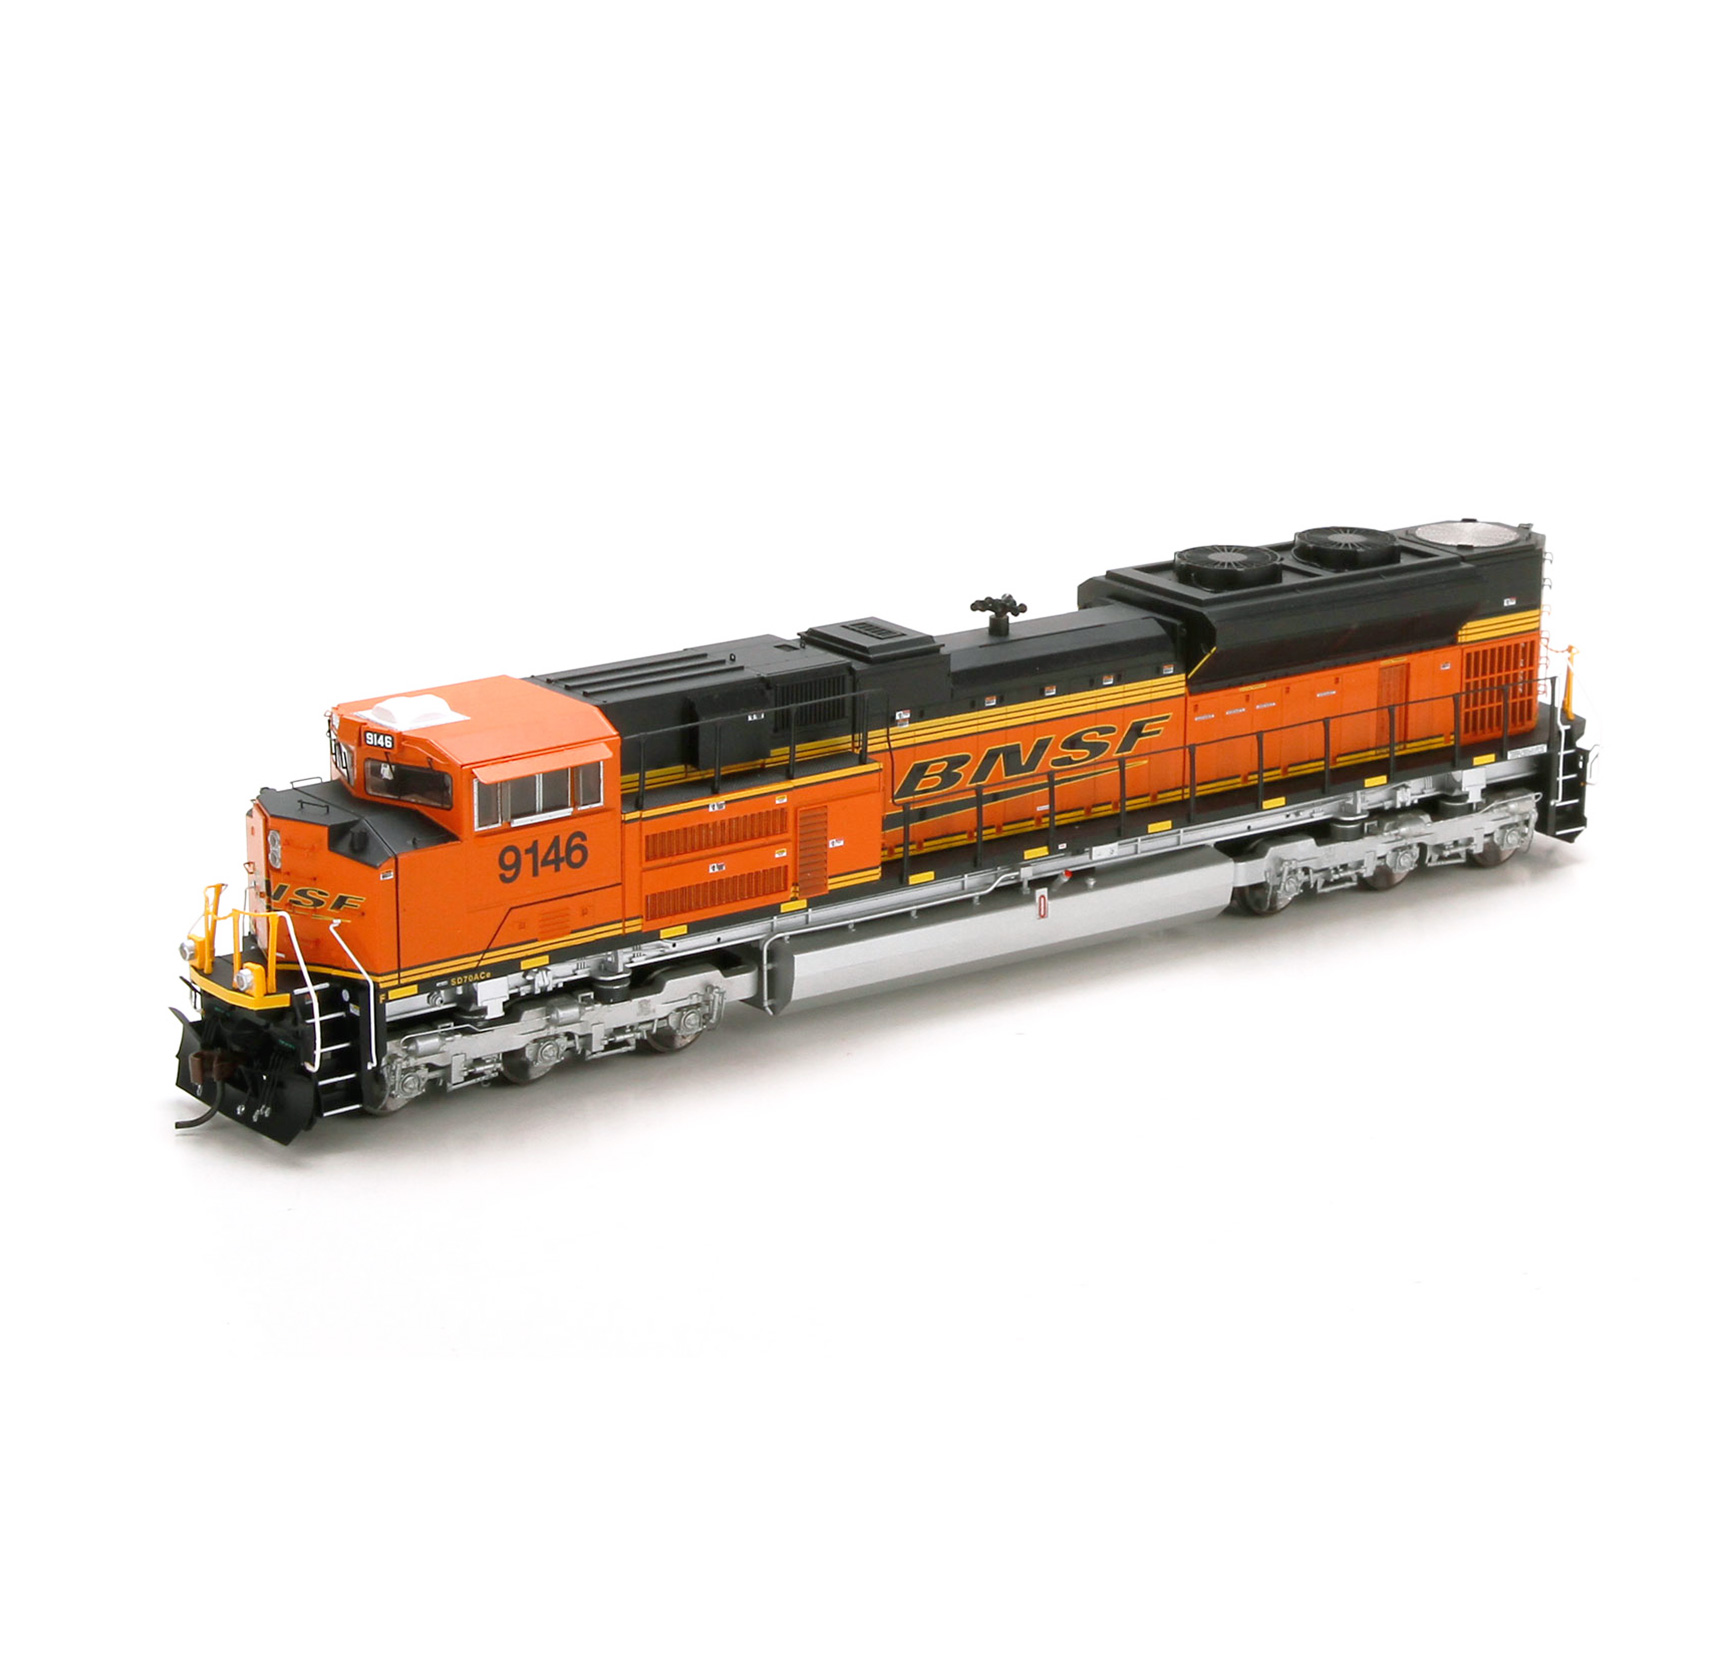 Athgen sd70ace bnsf 9146 on o scale train cars